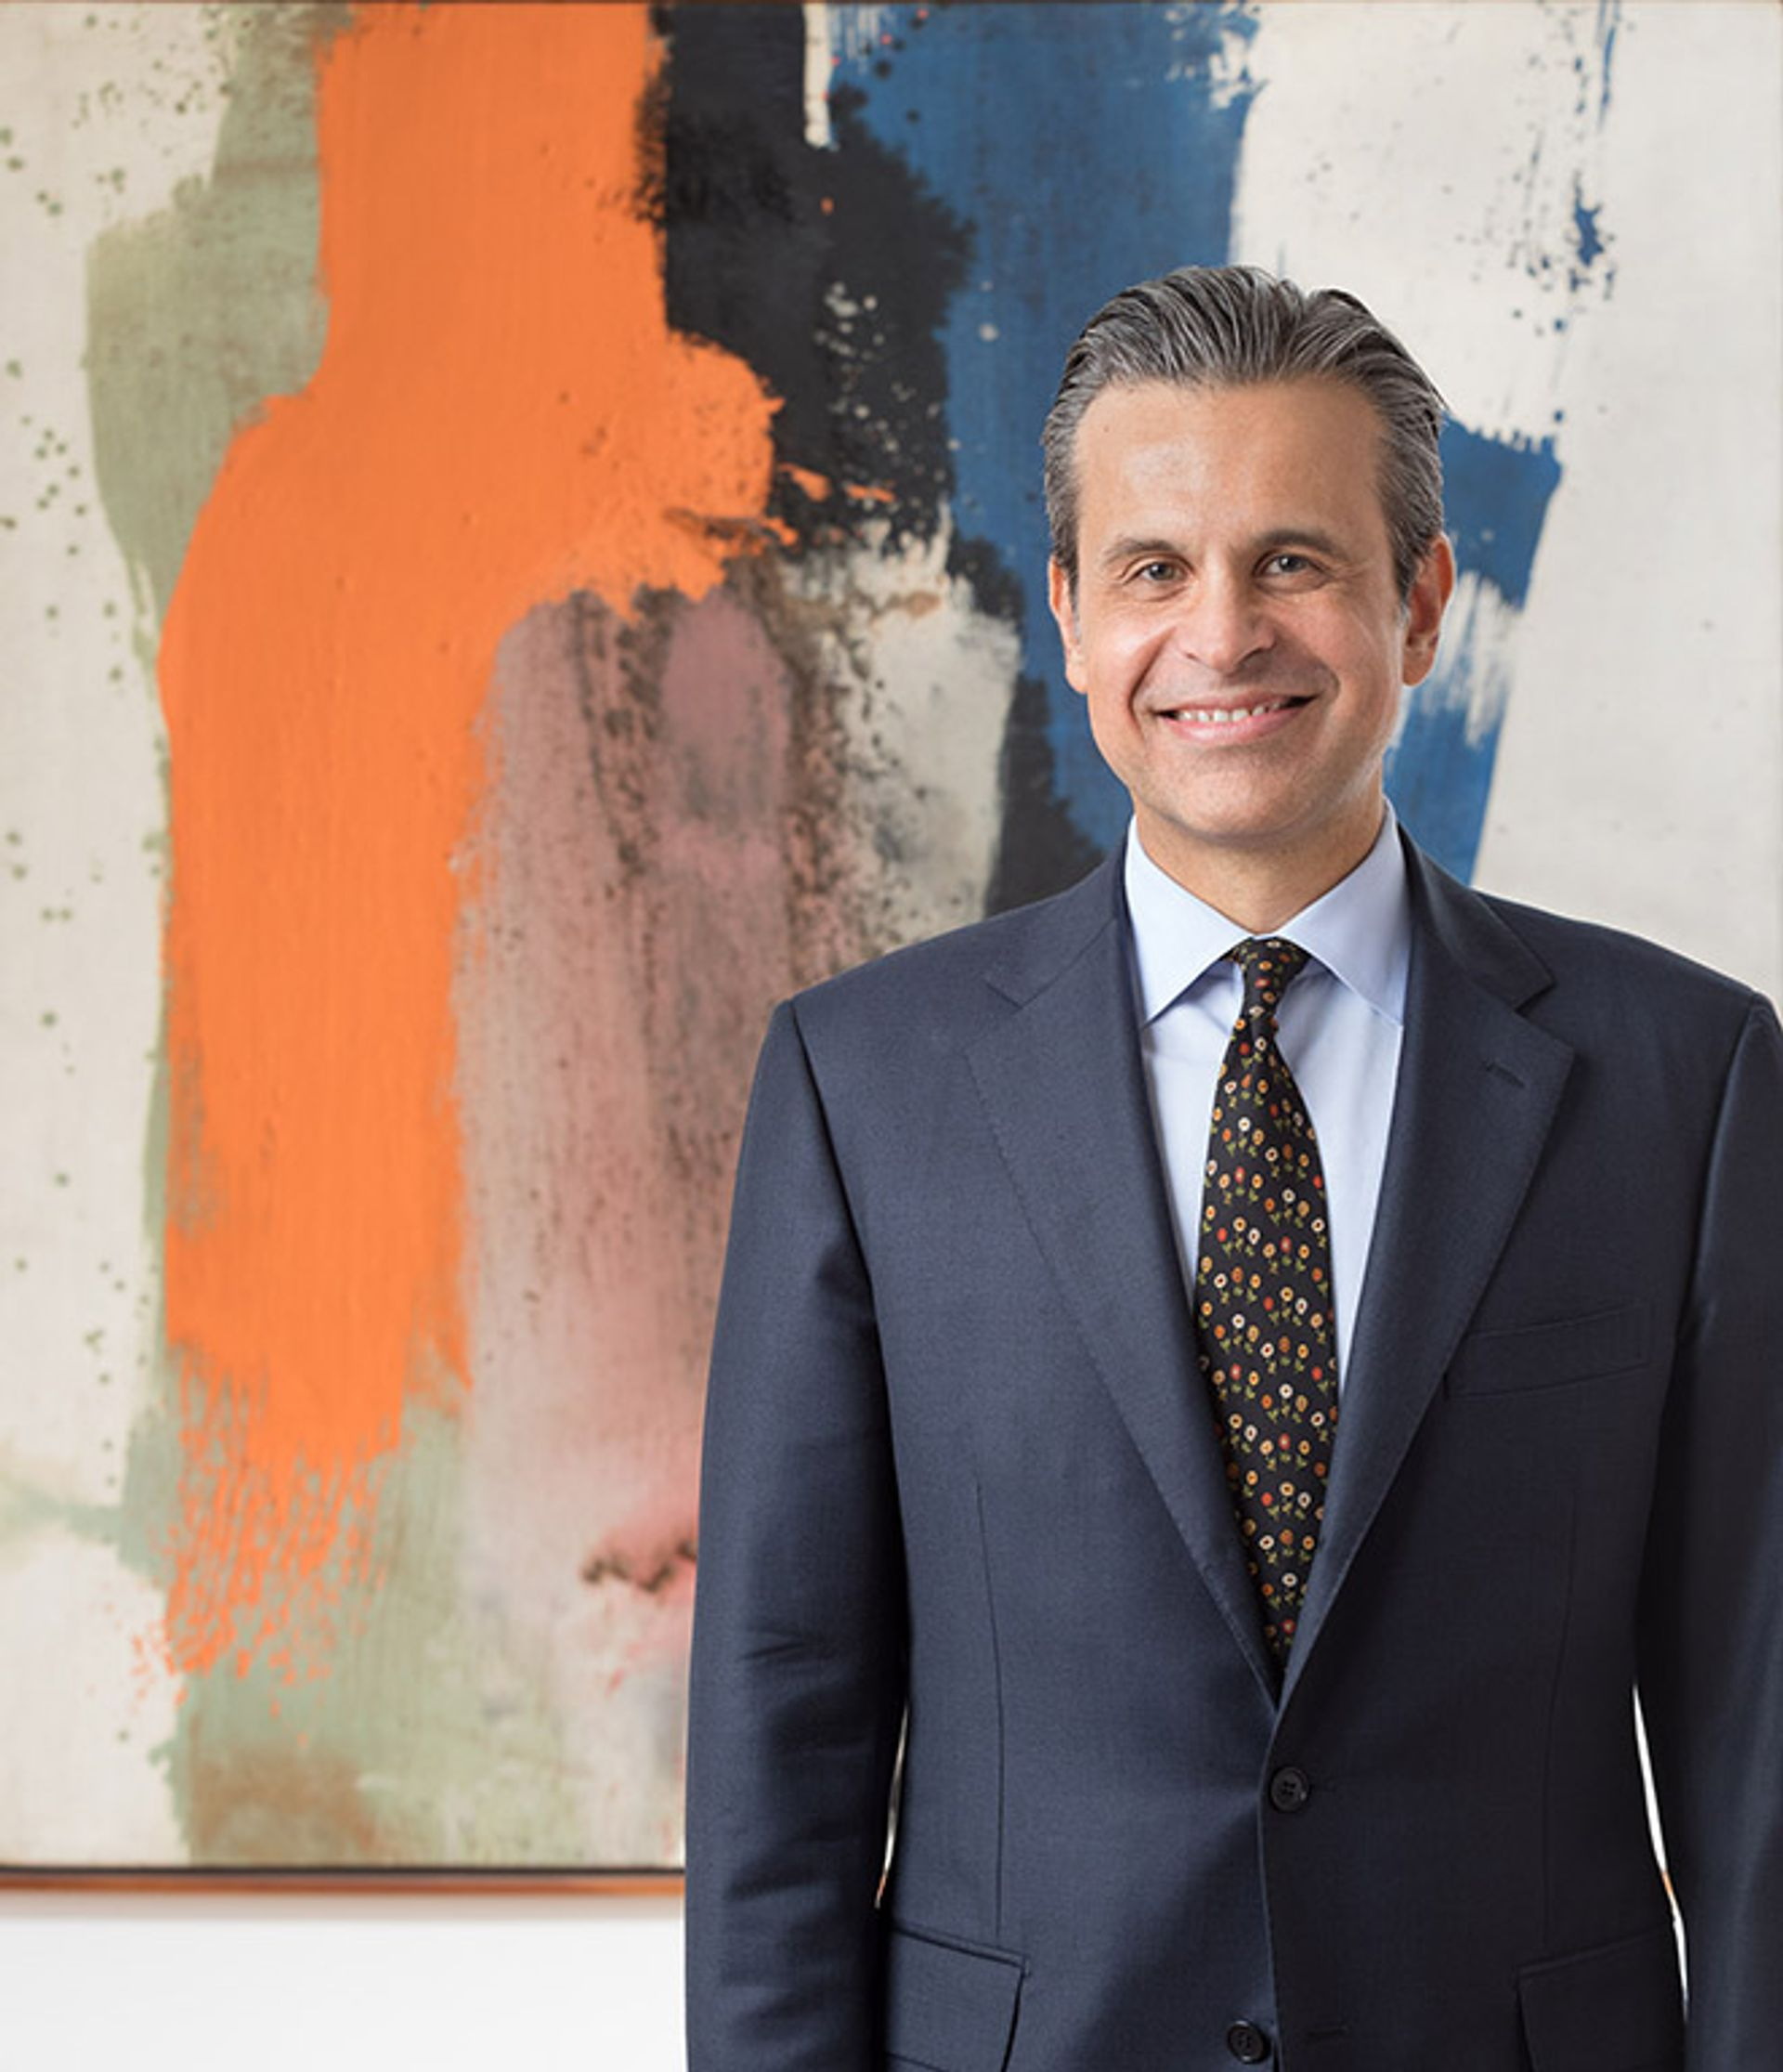 Salvador Salort-Pons, the director of the Detroit Institute of Arts © 2020 Detroit Institute of Arts